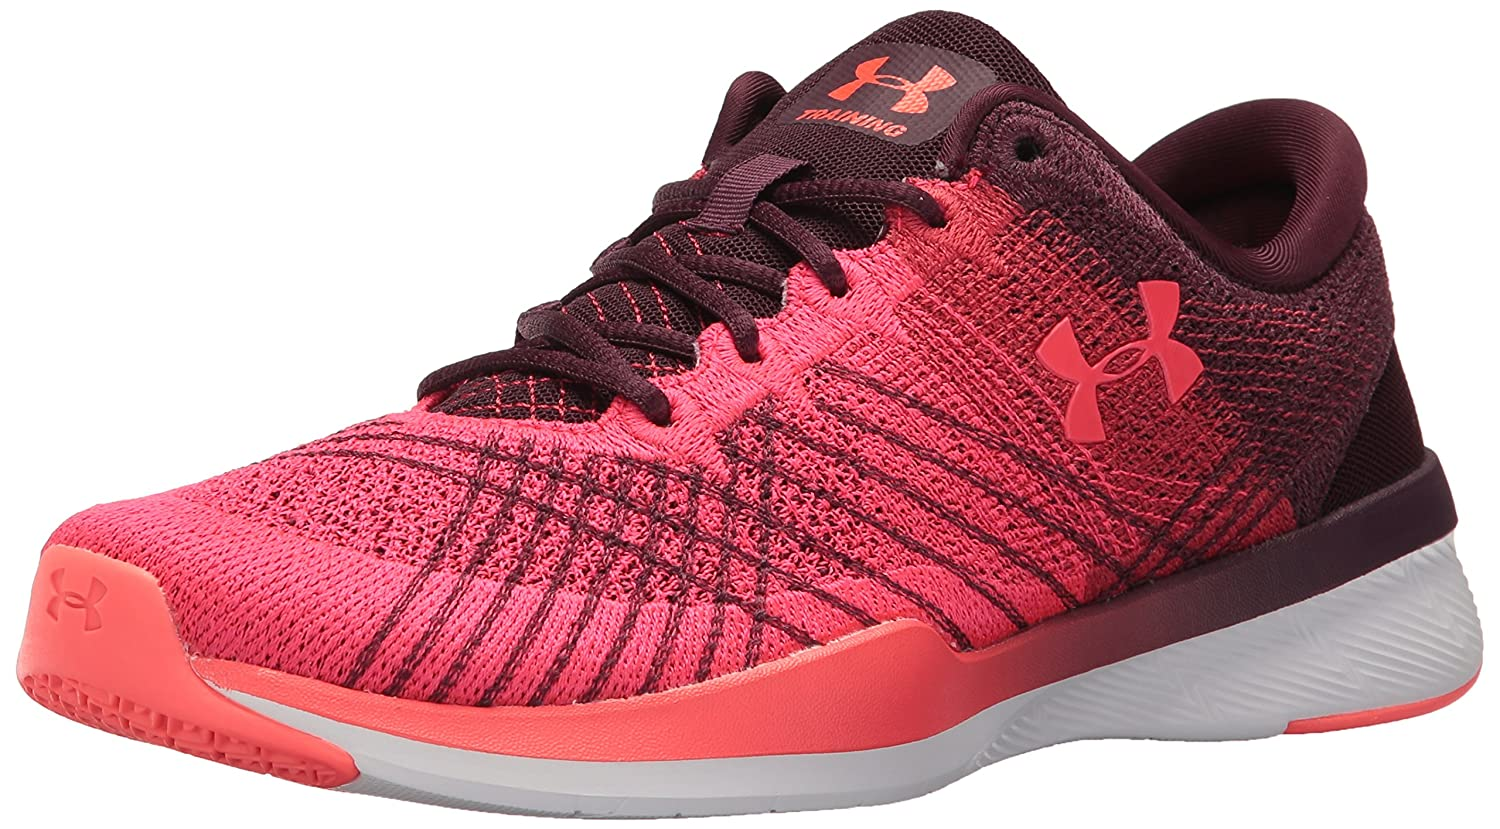 Under Armour Women's Threadborne Push Cross-Trainer Shoe B01NCM4J3I 8 M US|Raisin Red (500)/Red